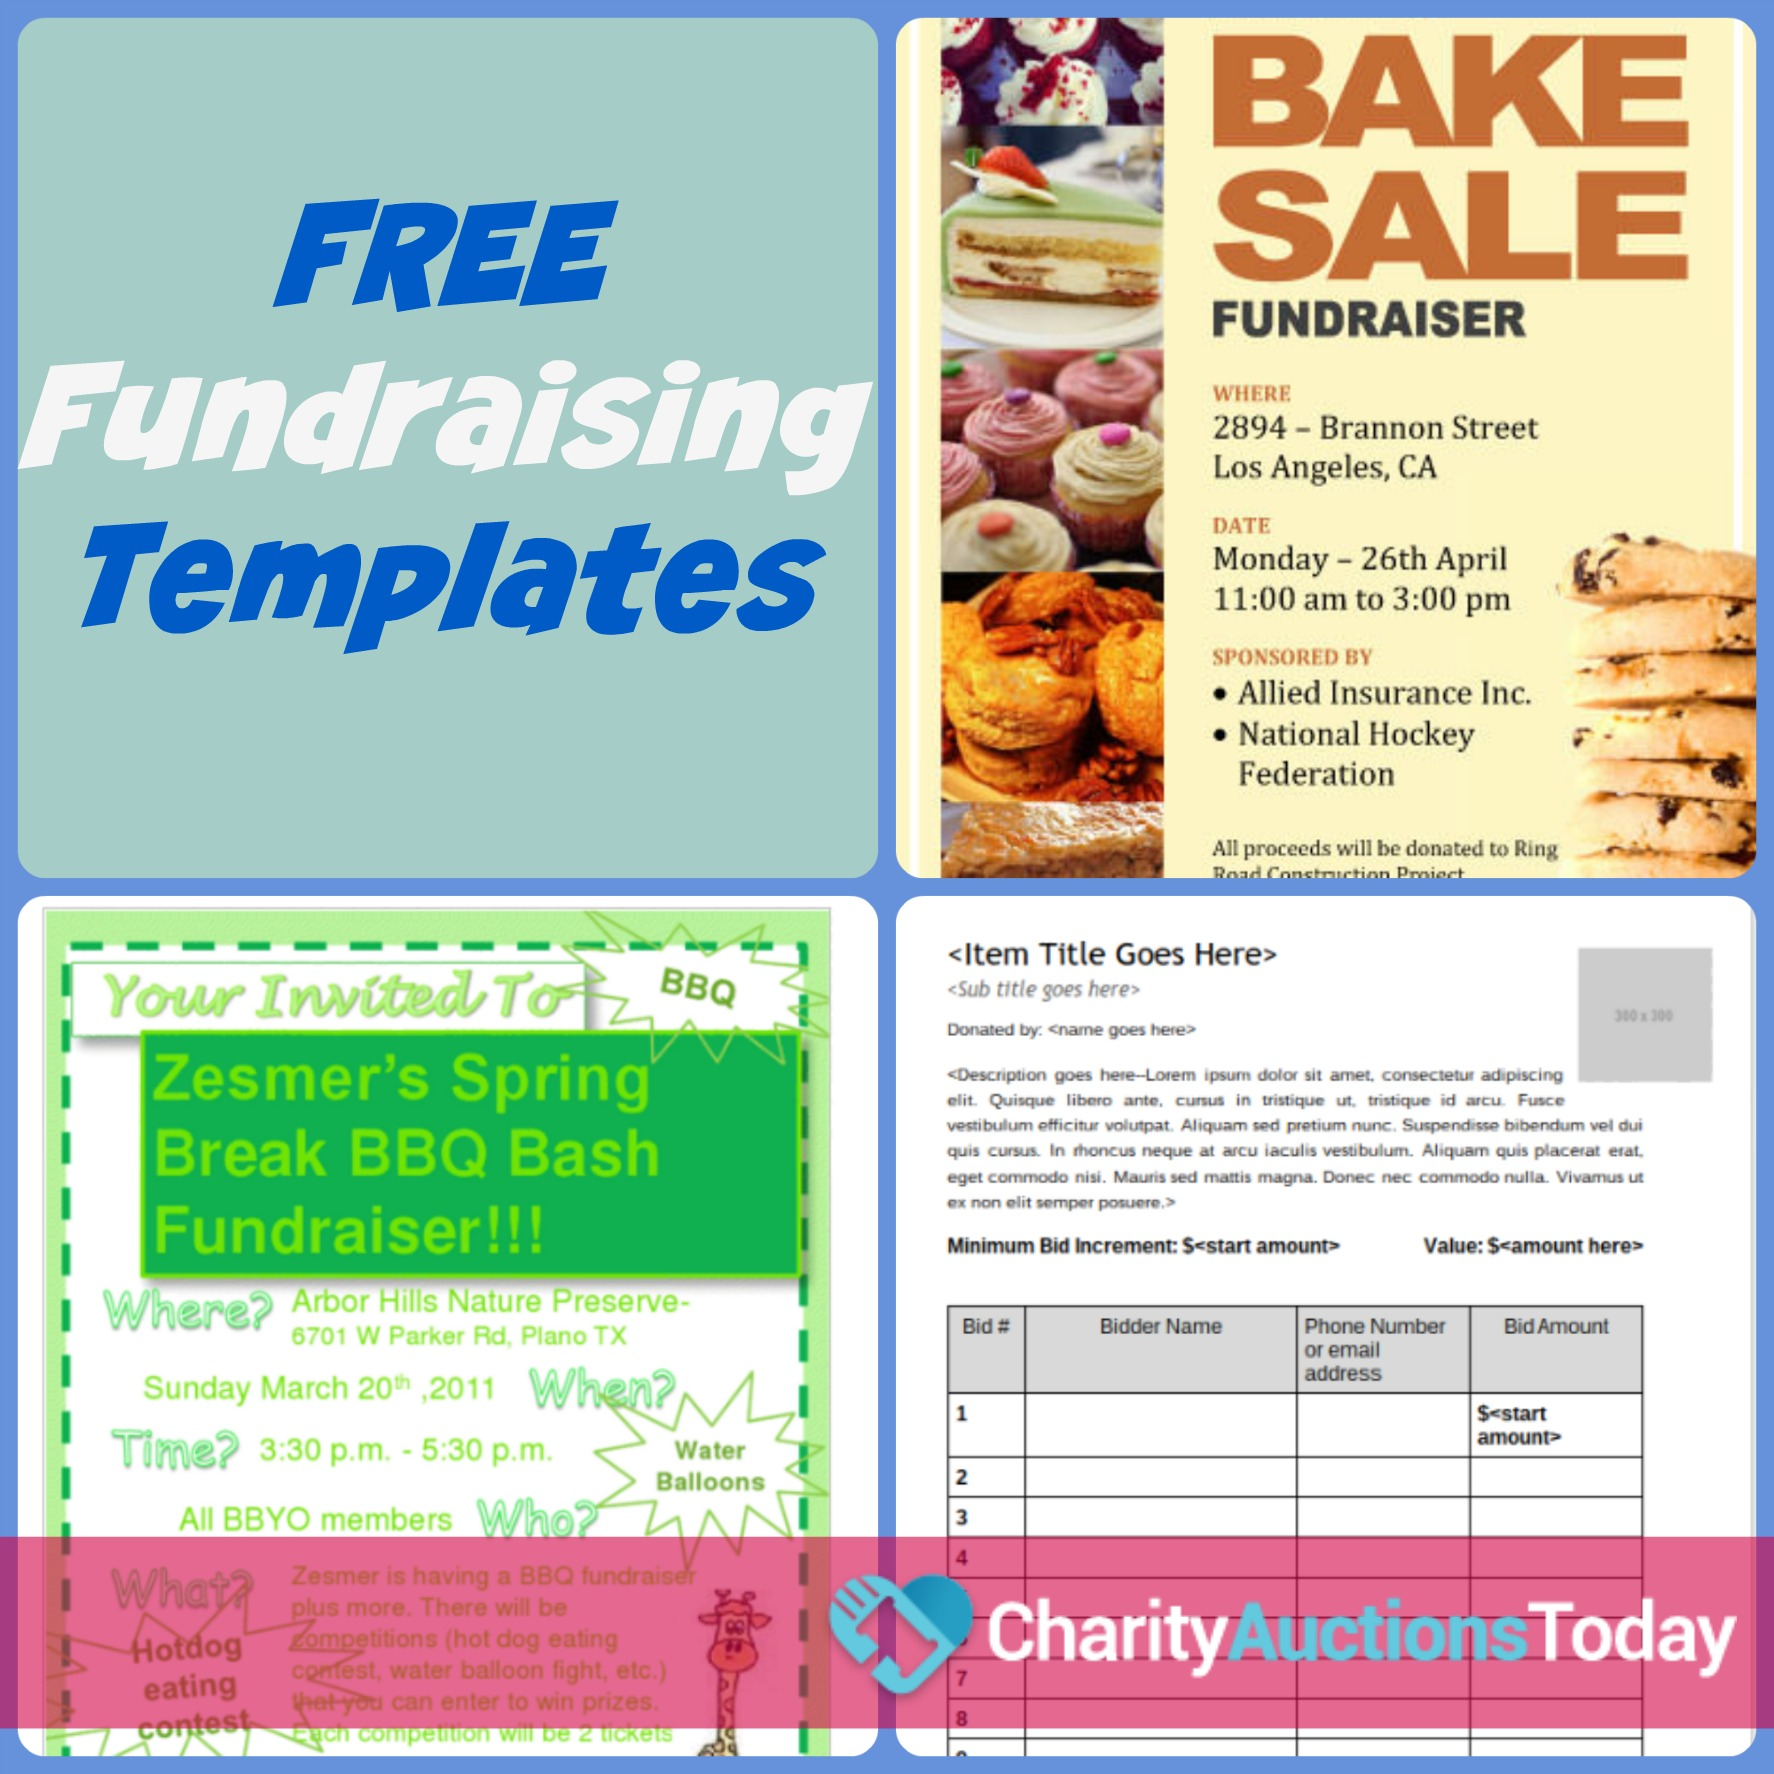 Free flyer printable templates nurufunicaasl free flyer printable templates cheaphphosting Images